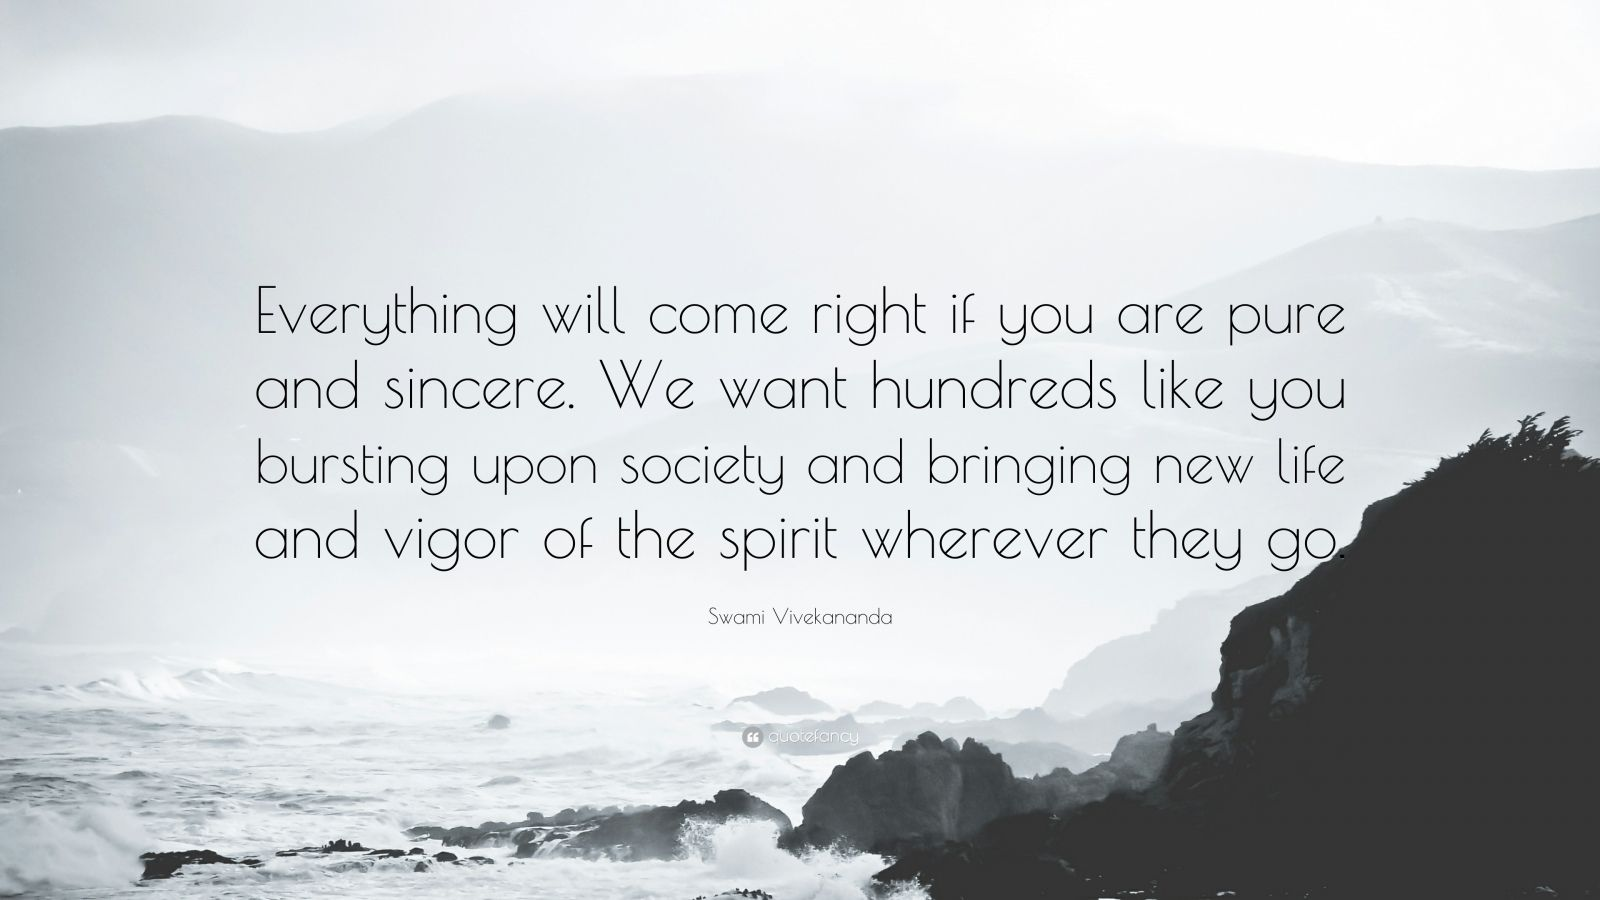 """Swami Vivekananda Quote: """"Everything will come right if you are pure and sincere. We want hundreds like you bursting upon society and bringing new life and vigor of the spirit wherever they go."""""""